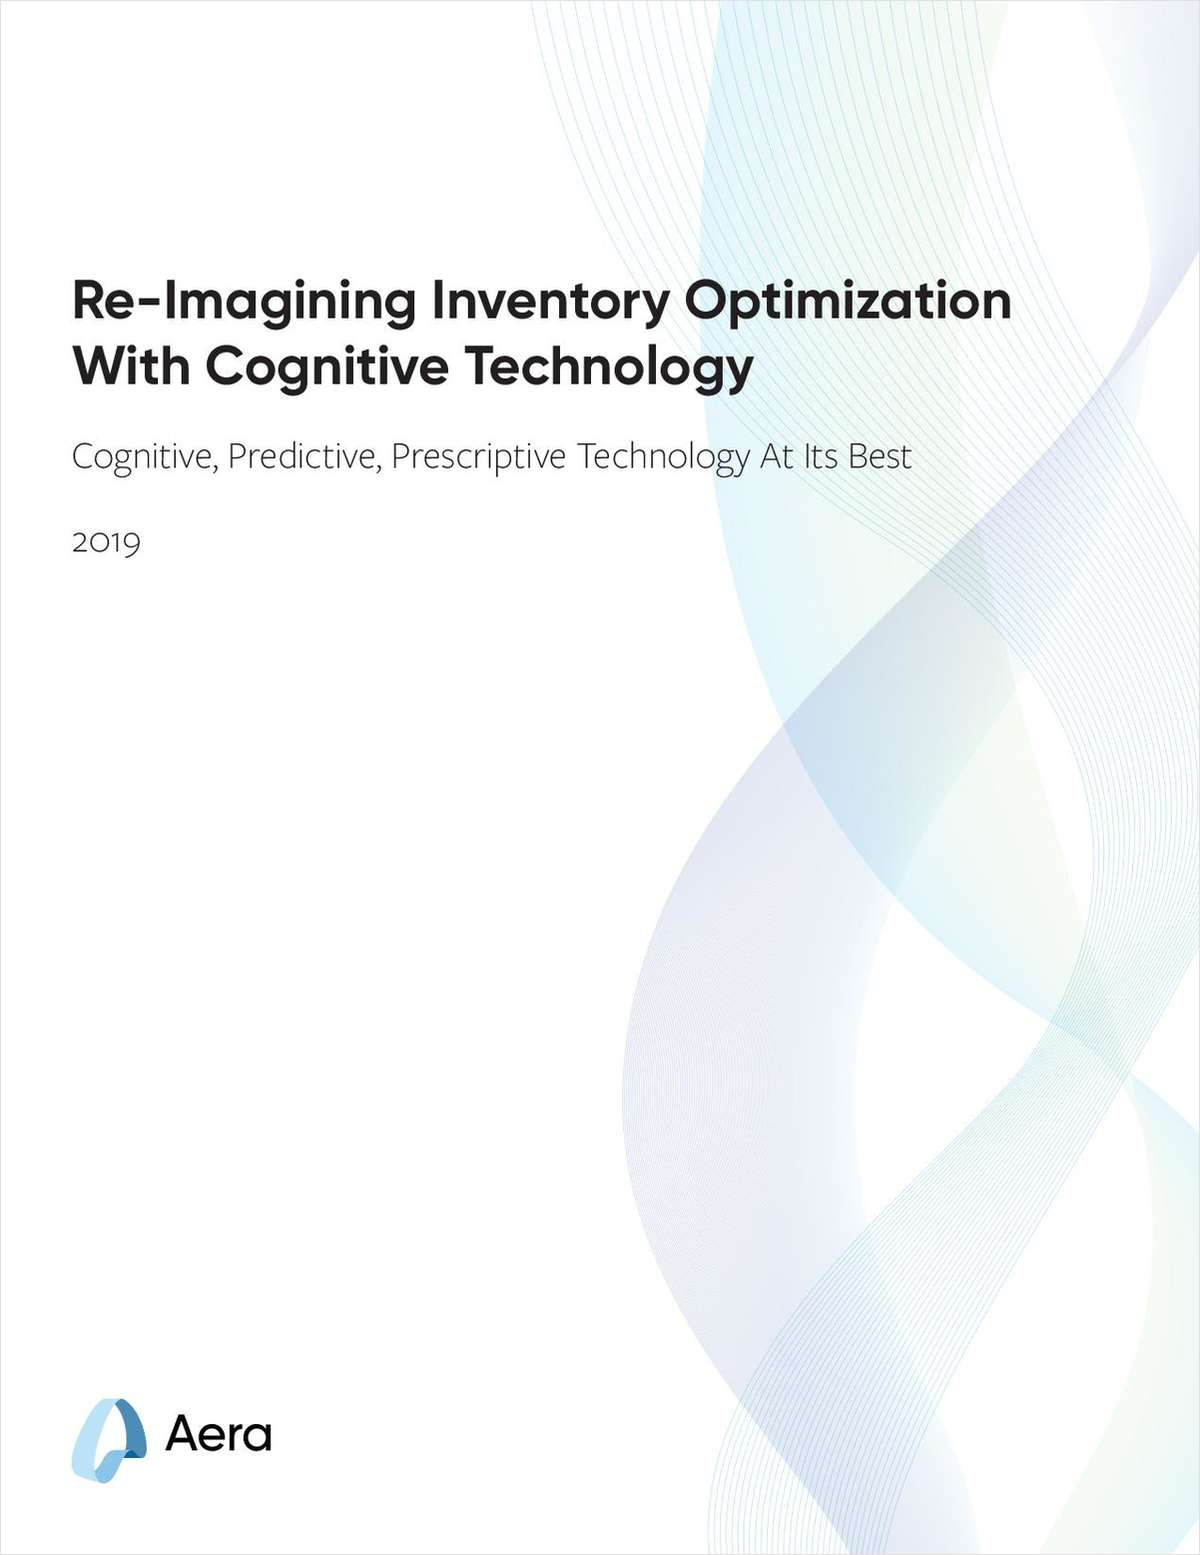 Re-Imagining Inventory Optimization with Cognitive Technology